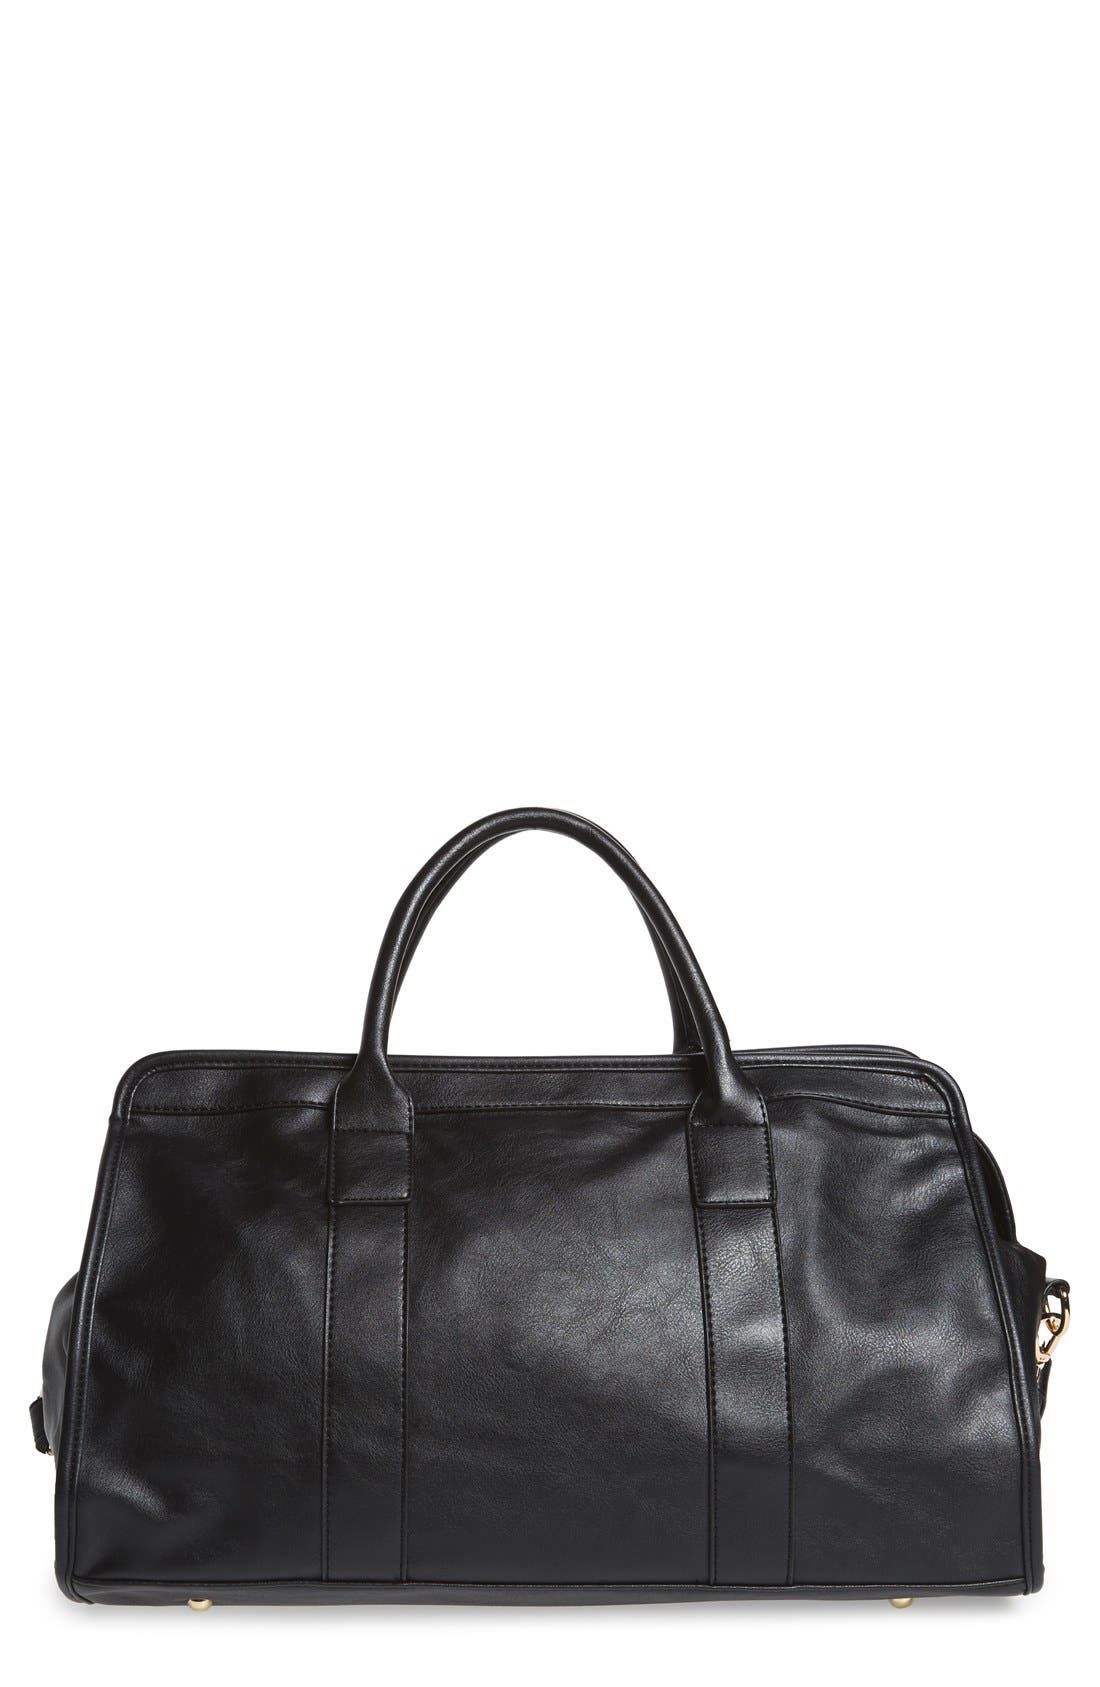 Main Image - NU-G Faux Leather Overnighter Bag